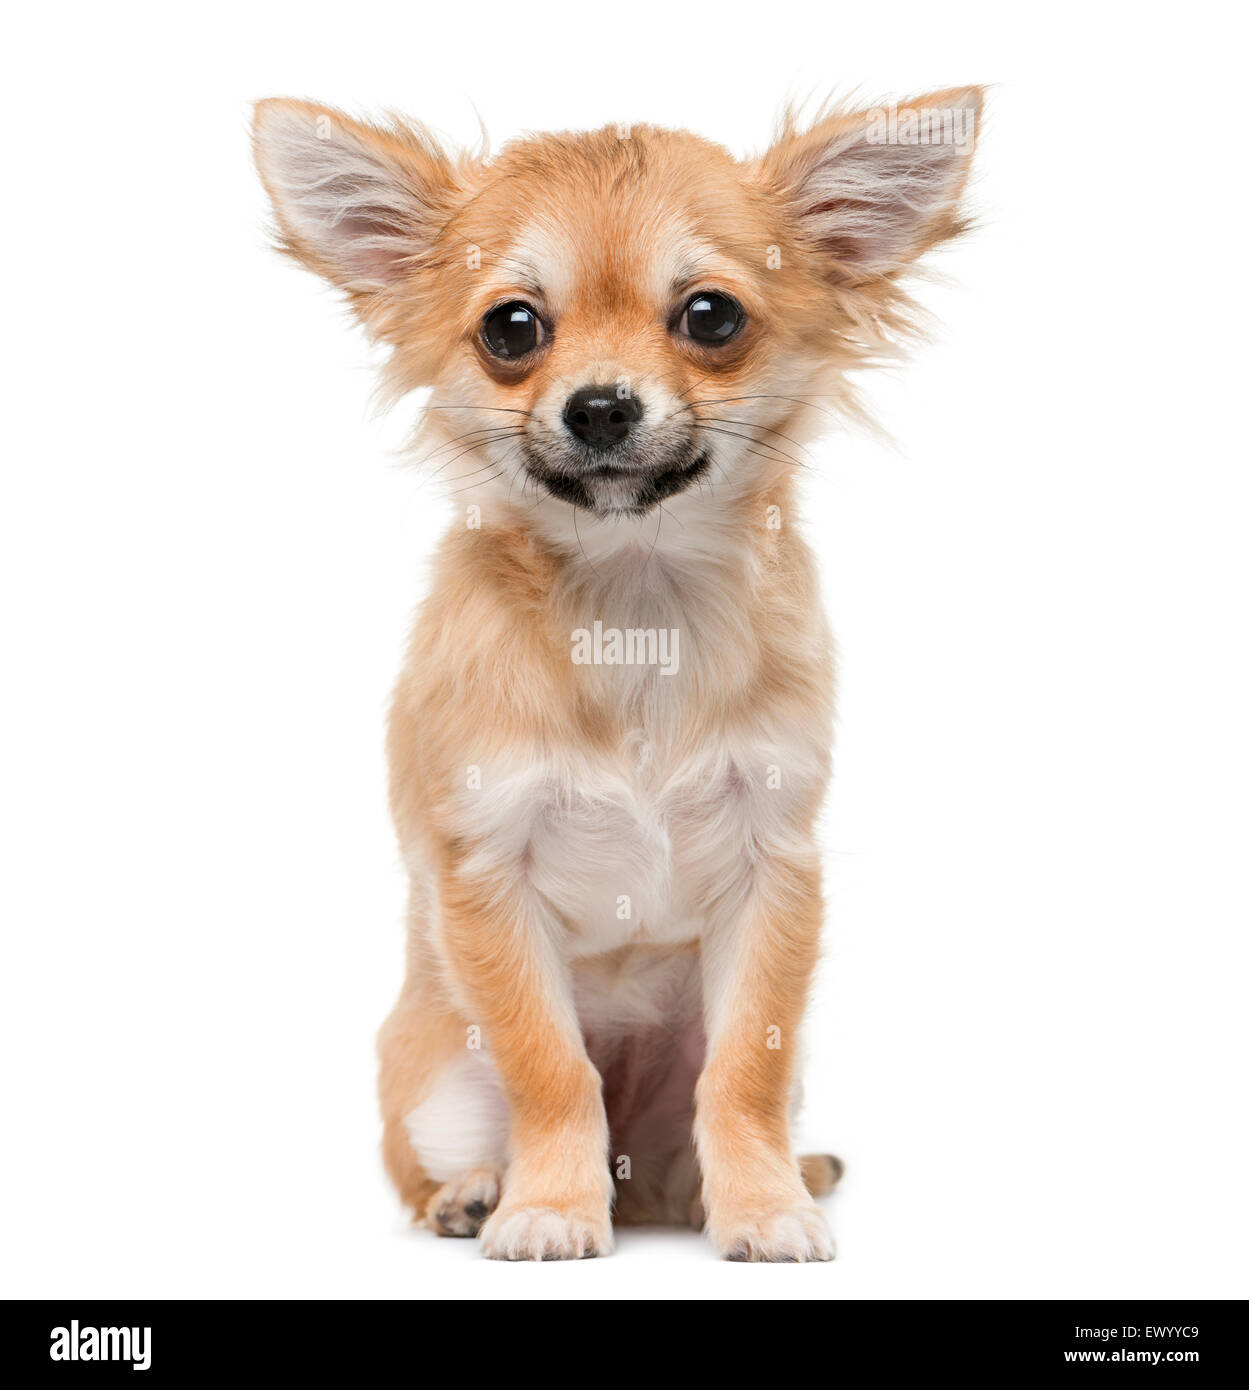 Chihuahua puppy (4 months old) in front of a white background - Stock Image